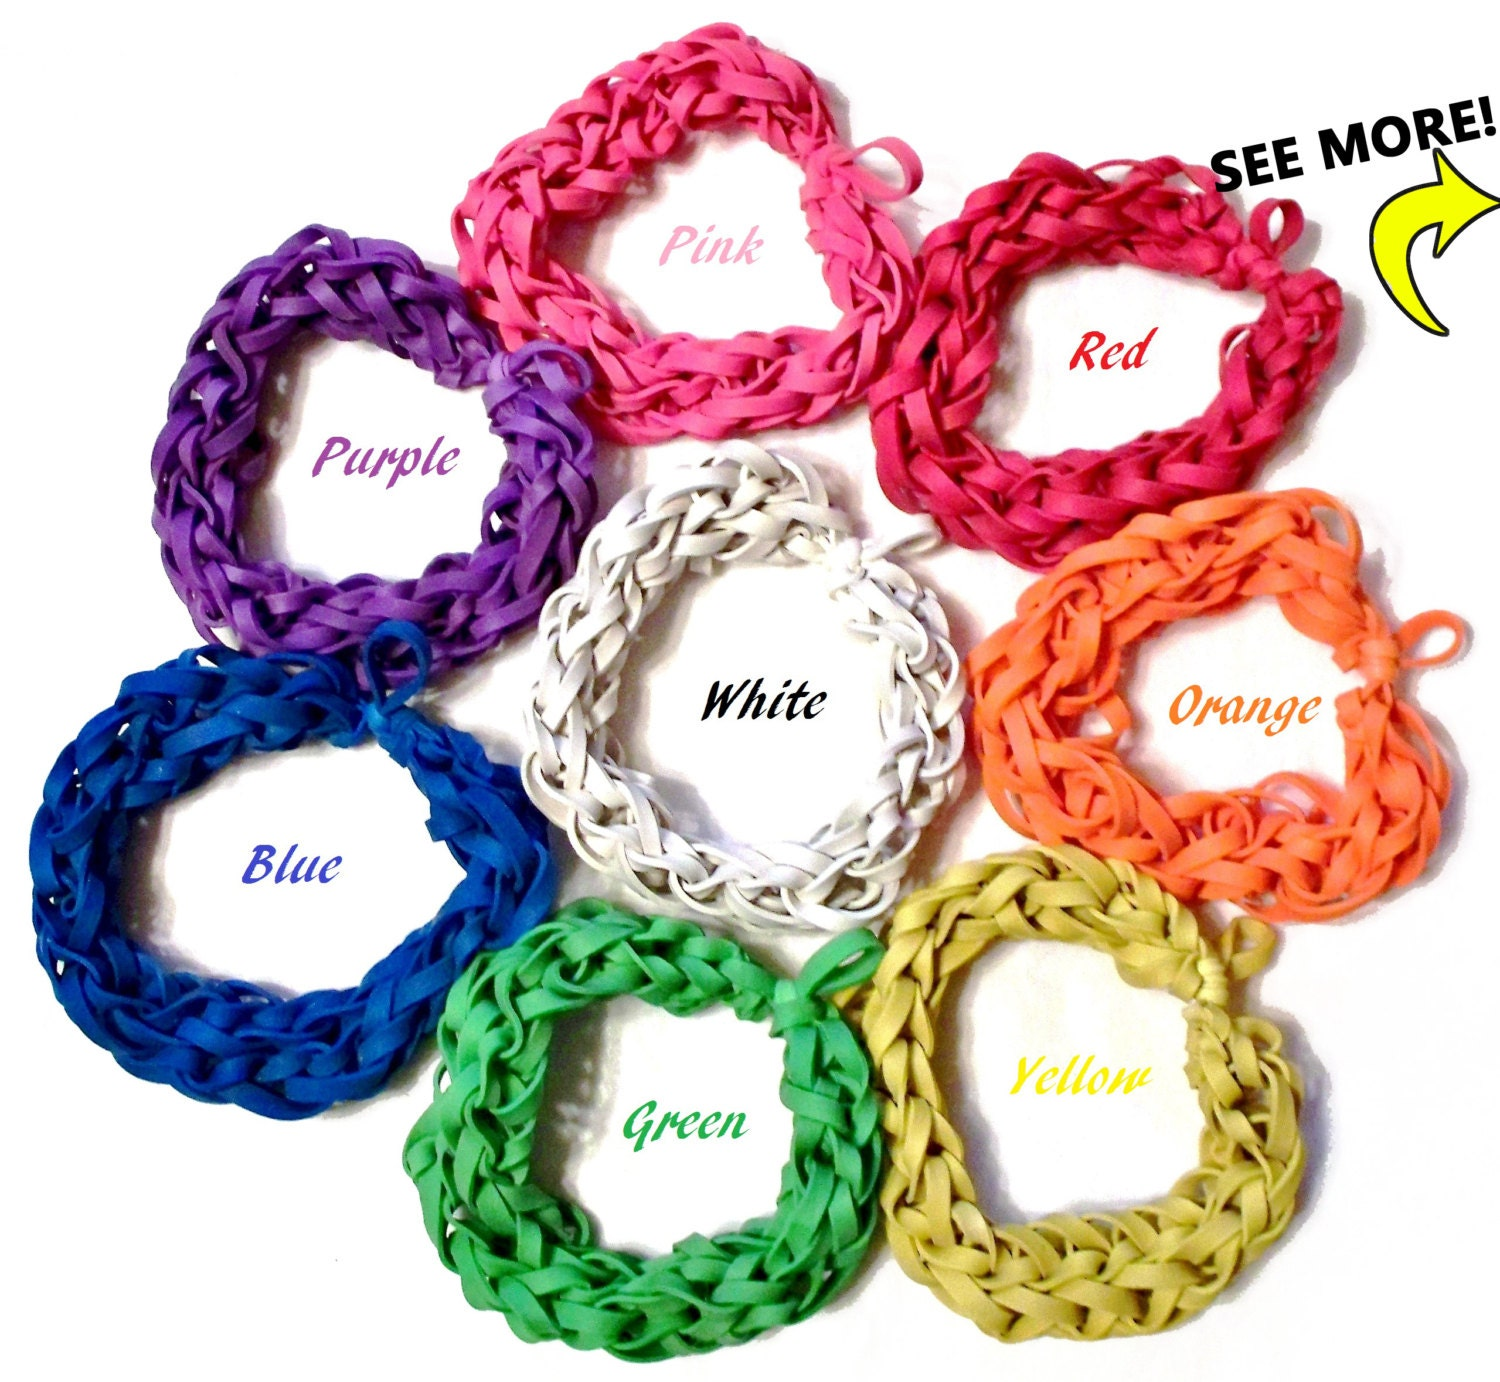 Customize Your Own Rubber Band Bracelet Bungle Bands